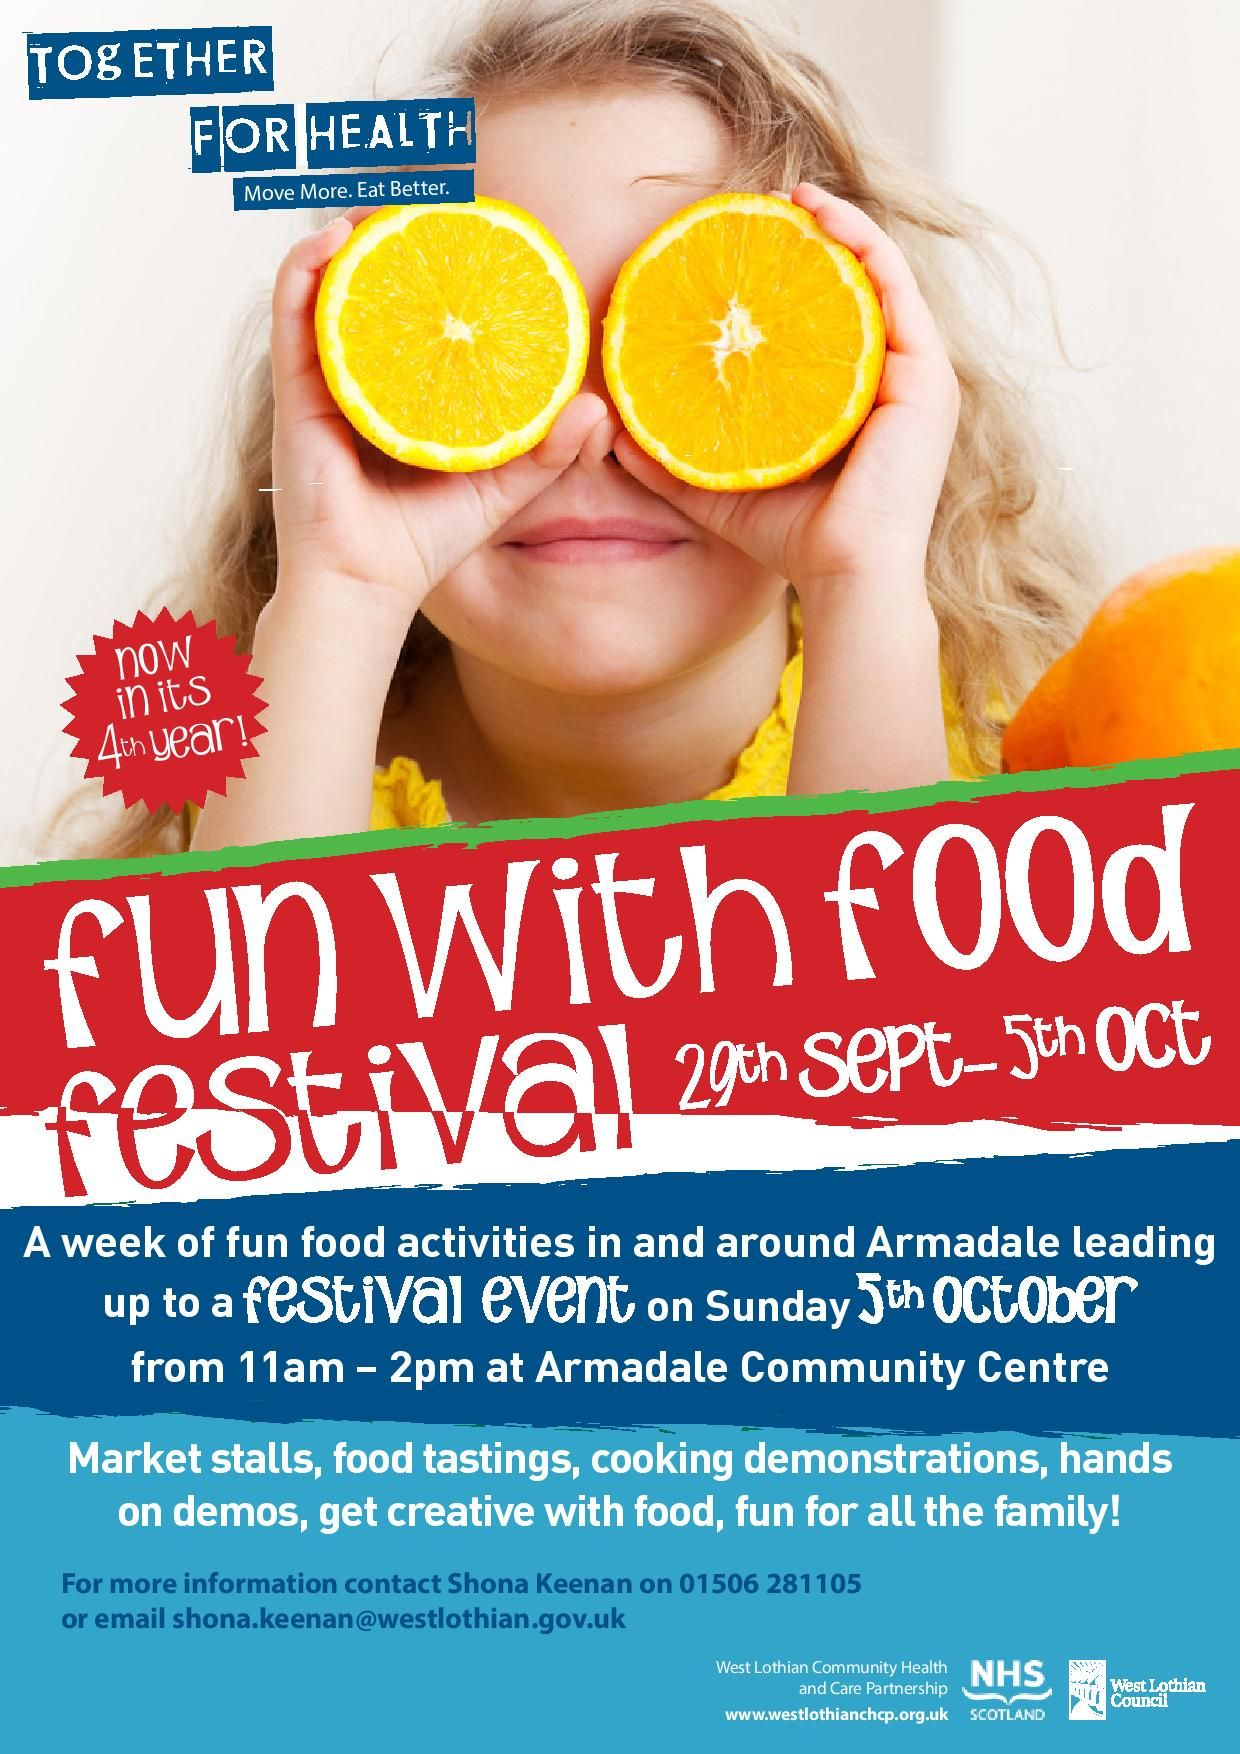 Food Festival Armadale 29th Sept 5th Oct A week of fun